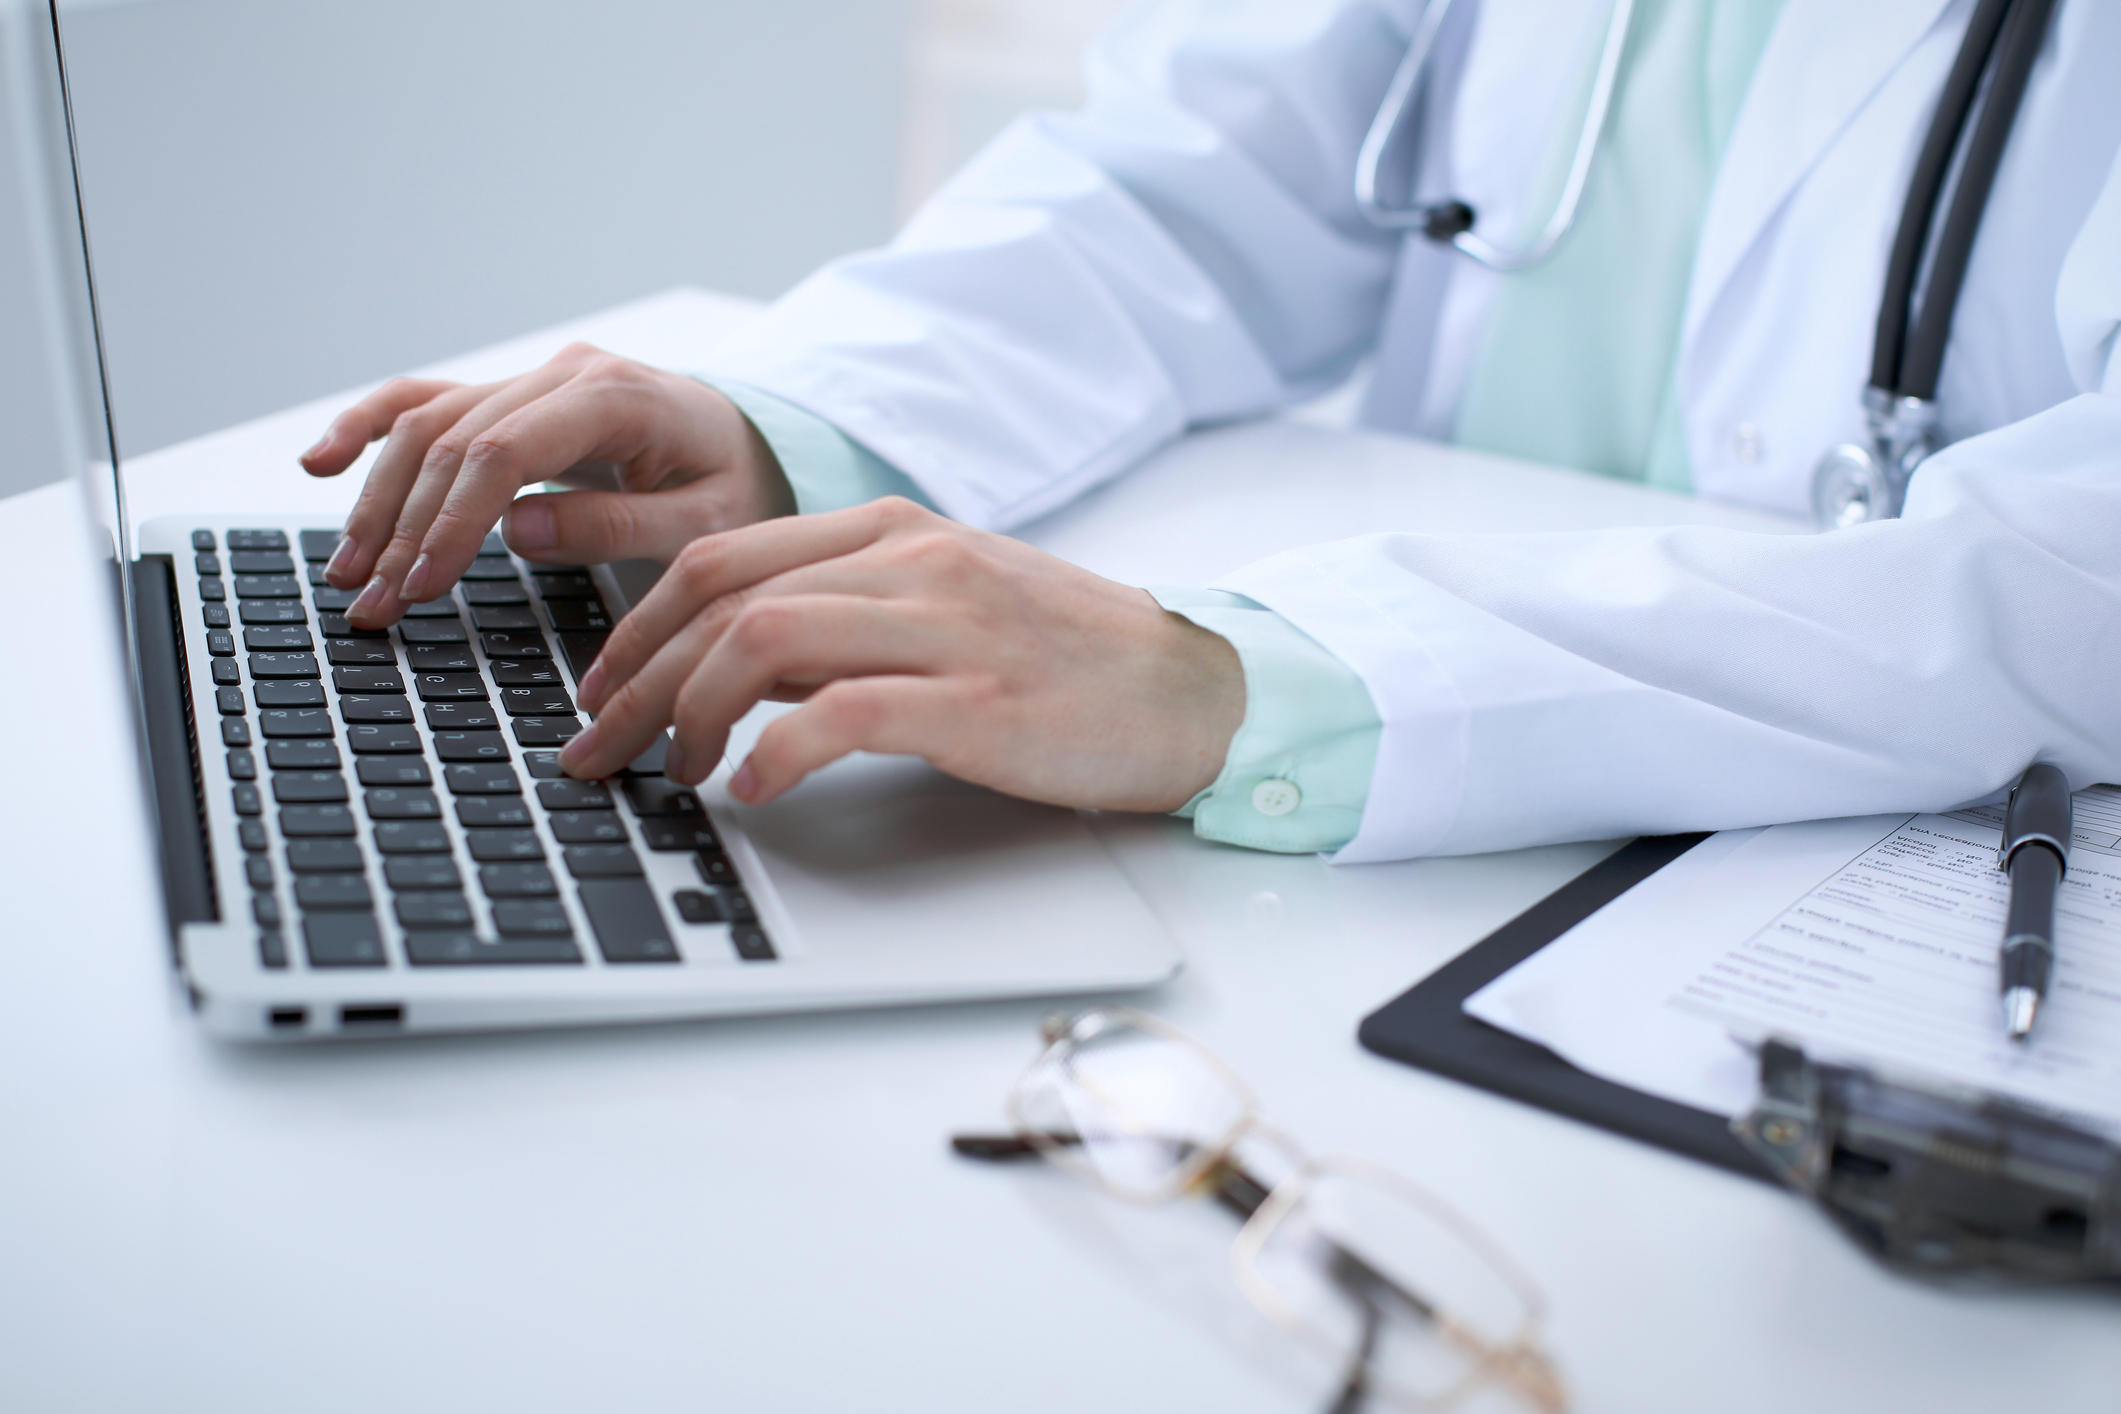 Close-up-of-a-female-doctor-typing-on-laptop-computer,-sitting-at-the-table-in-the-hospital-867698684_2125x1416-1